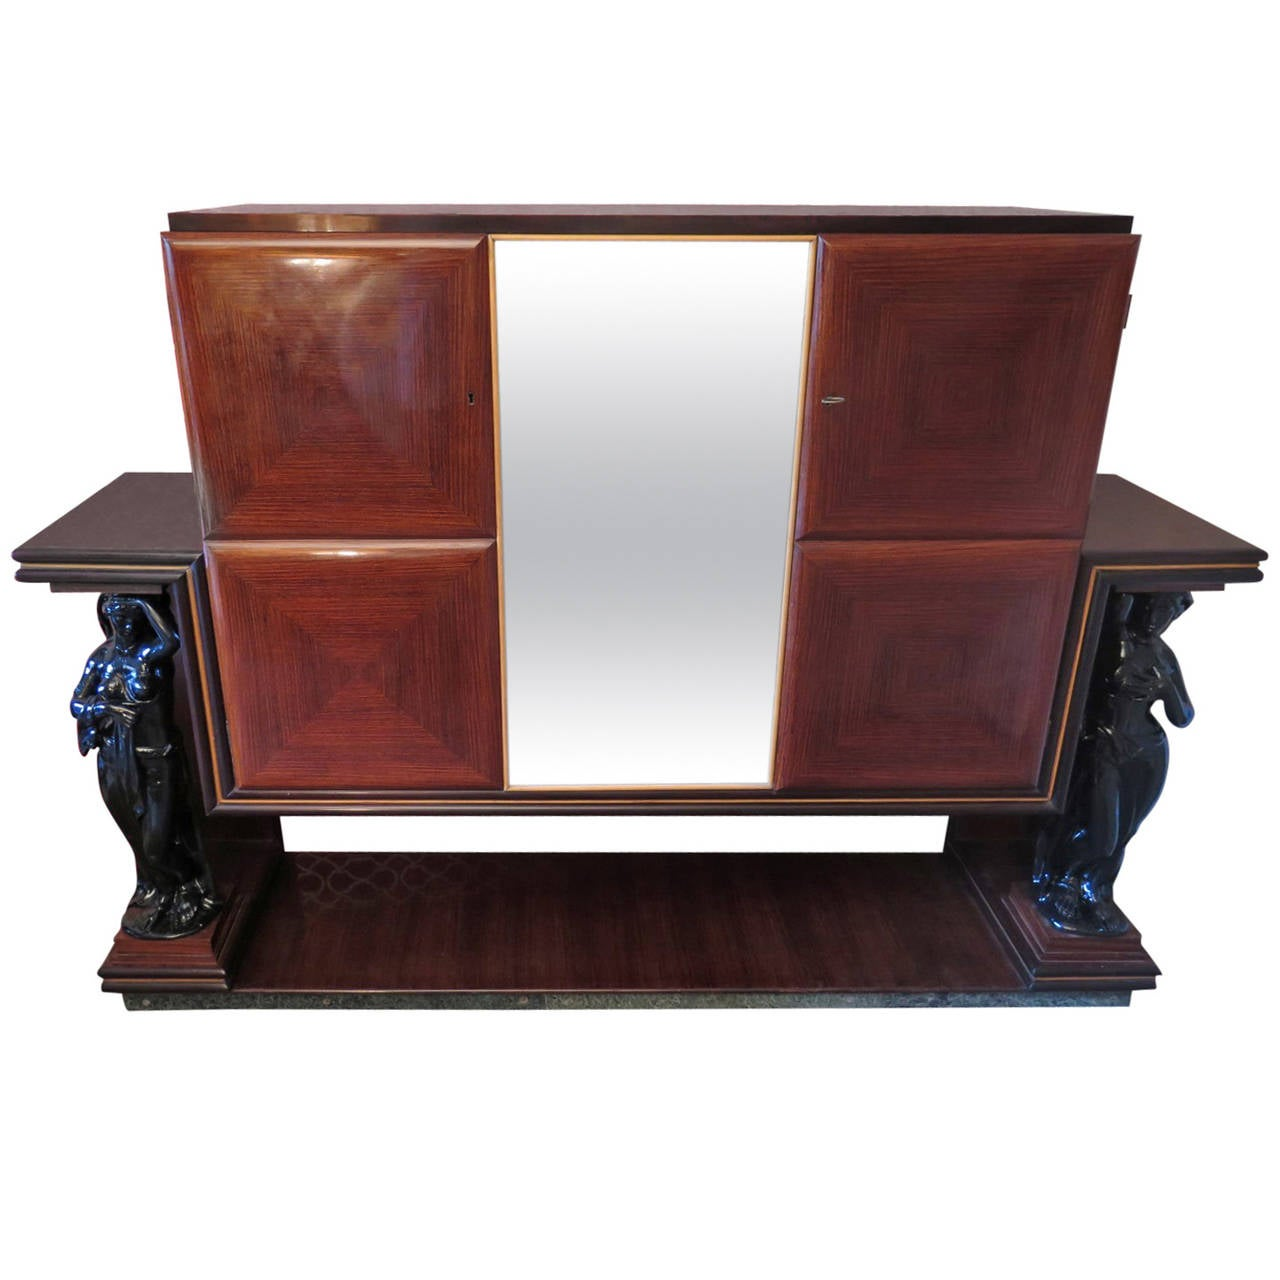 1940s Rectangular Italian Art Deco Bar Cabinet